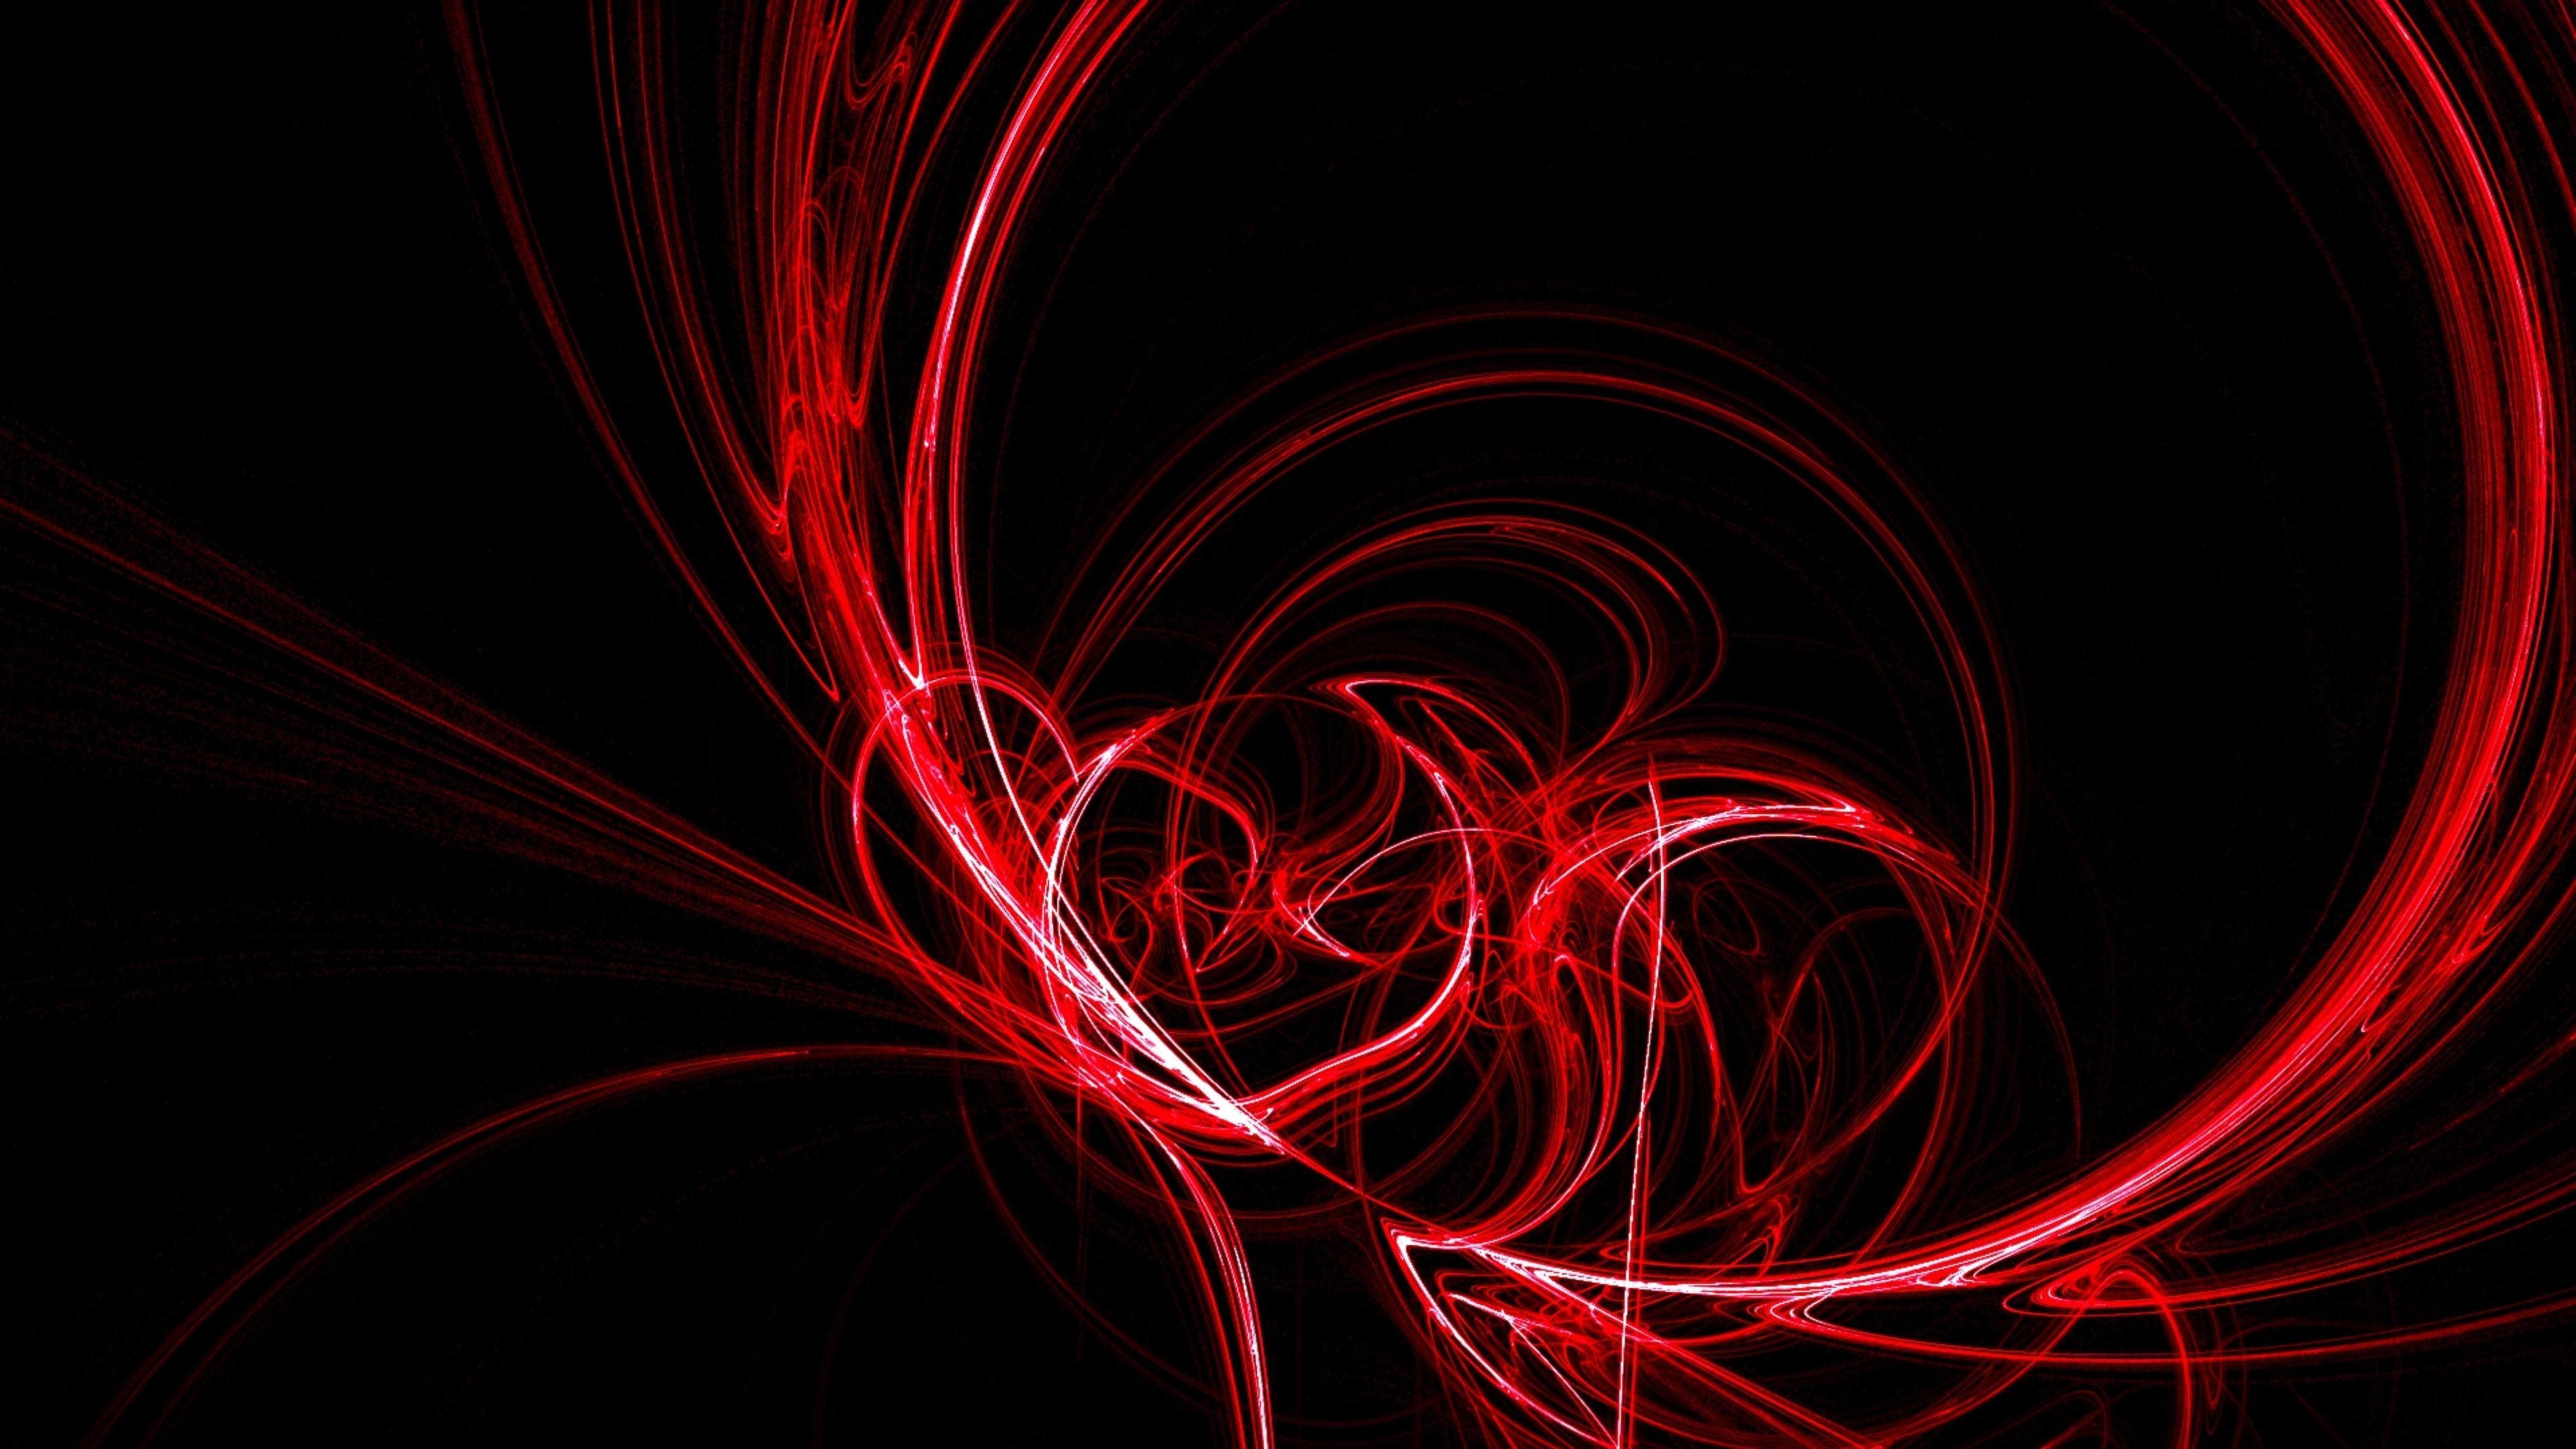 Black And Red Swirl Abstract K Wallpapers Free K Wallpaper